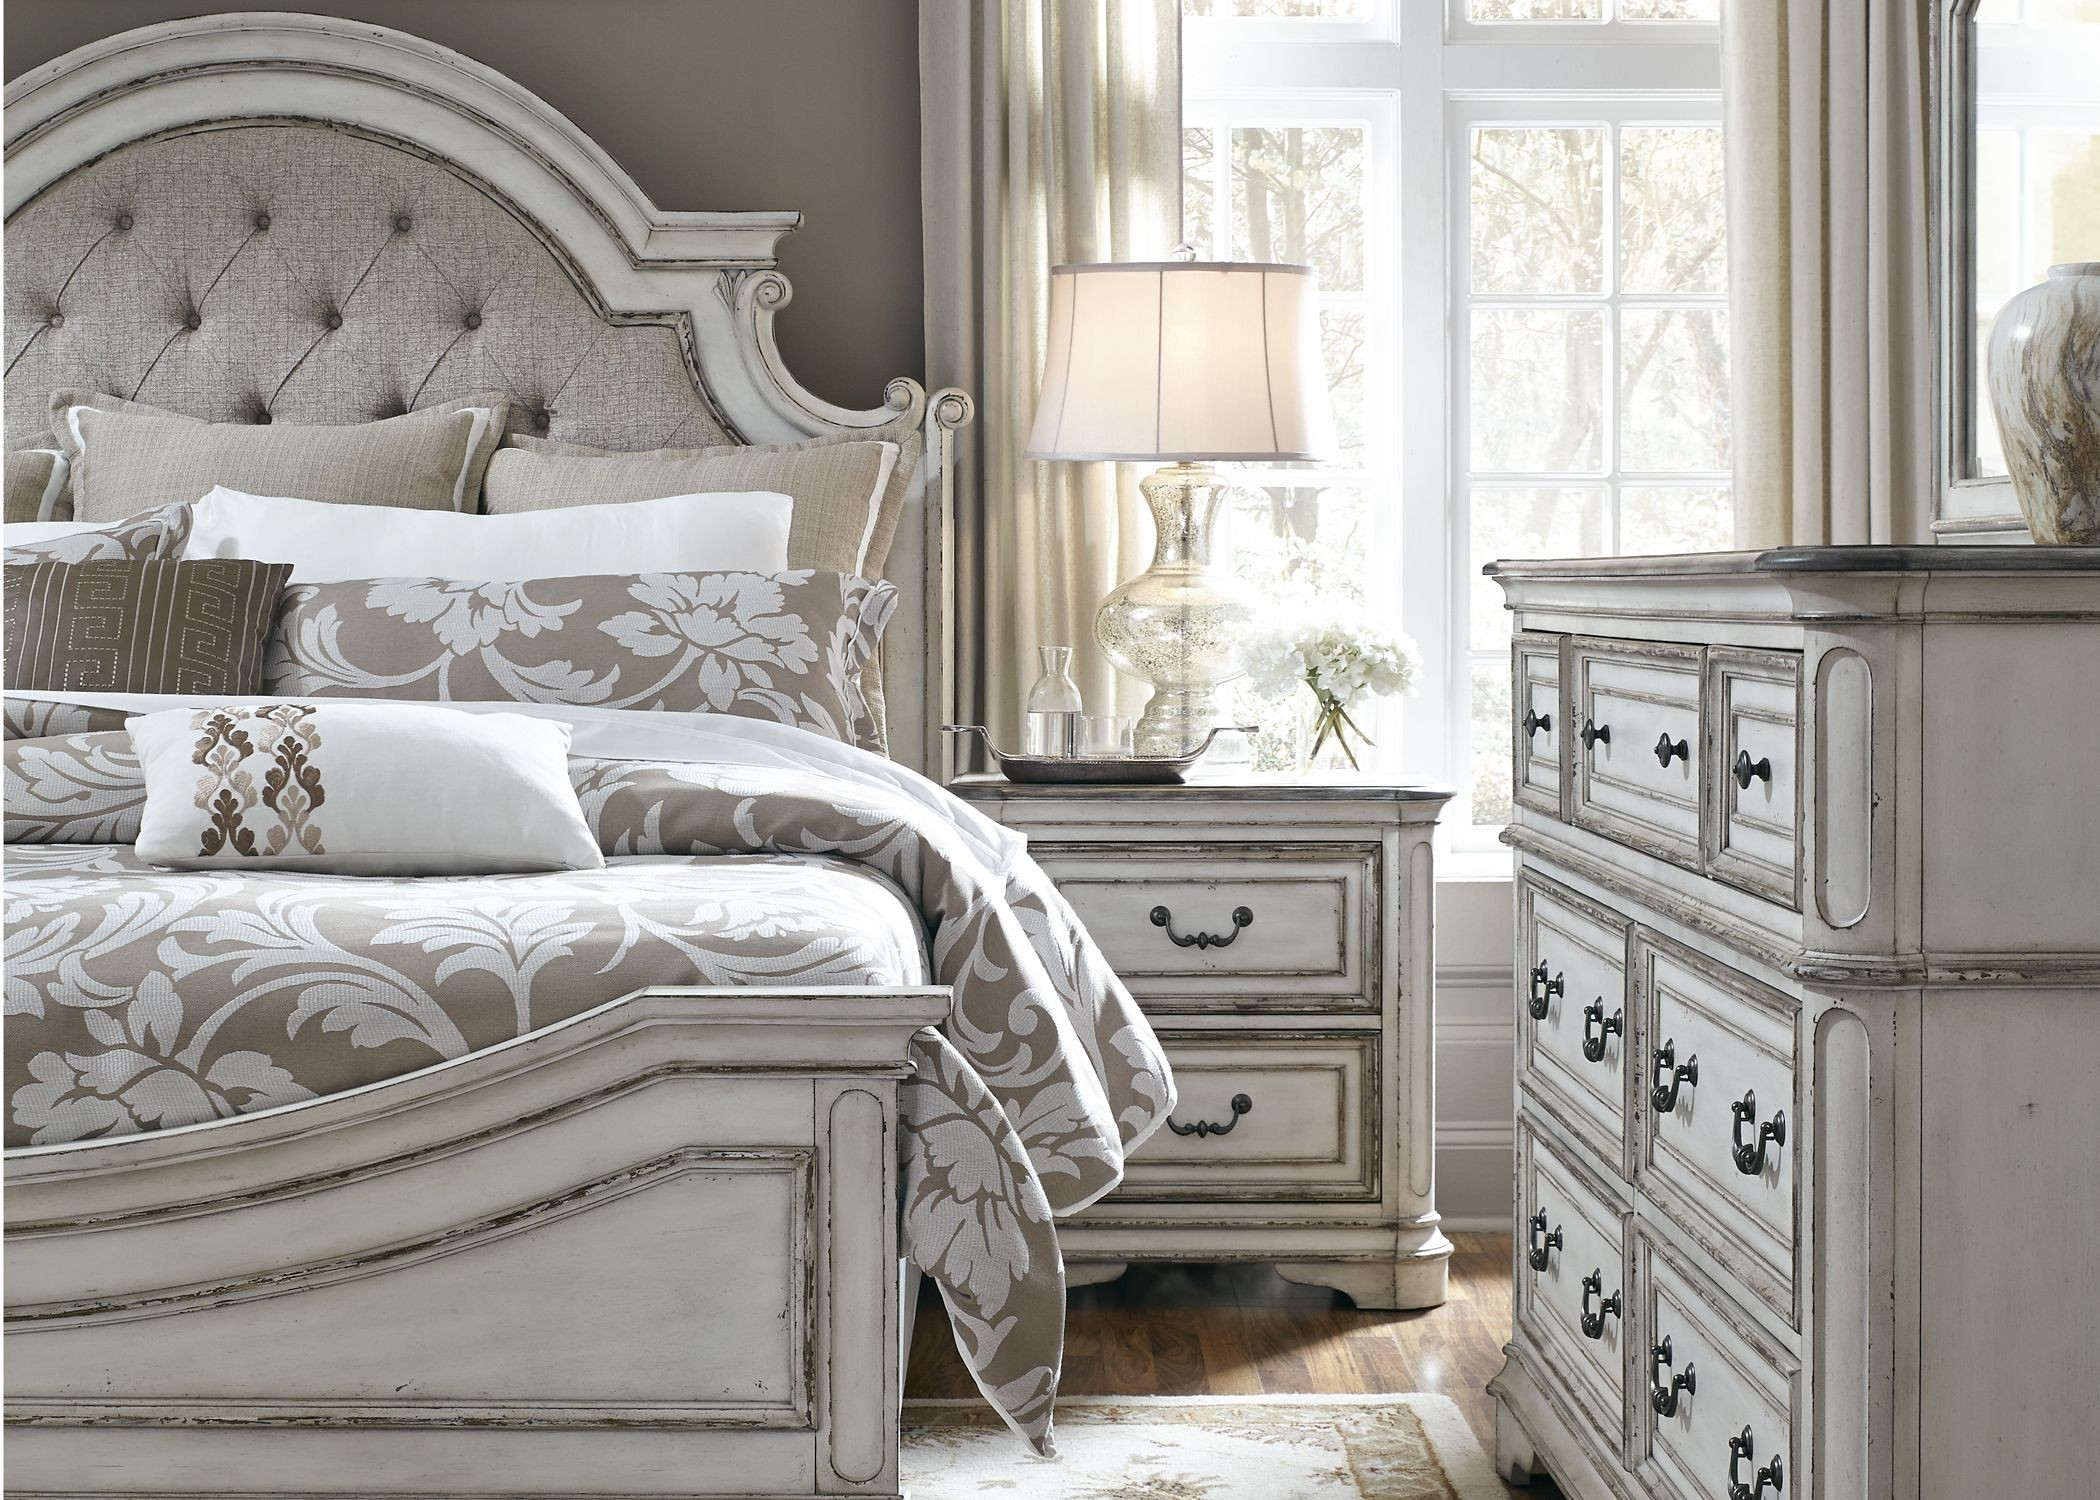 Bedroom sets coleman furniture - Magnolia Manor Antique White Upholstered Panel Bedroom Set